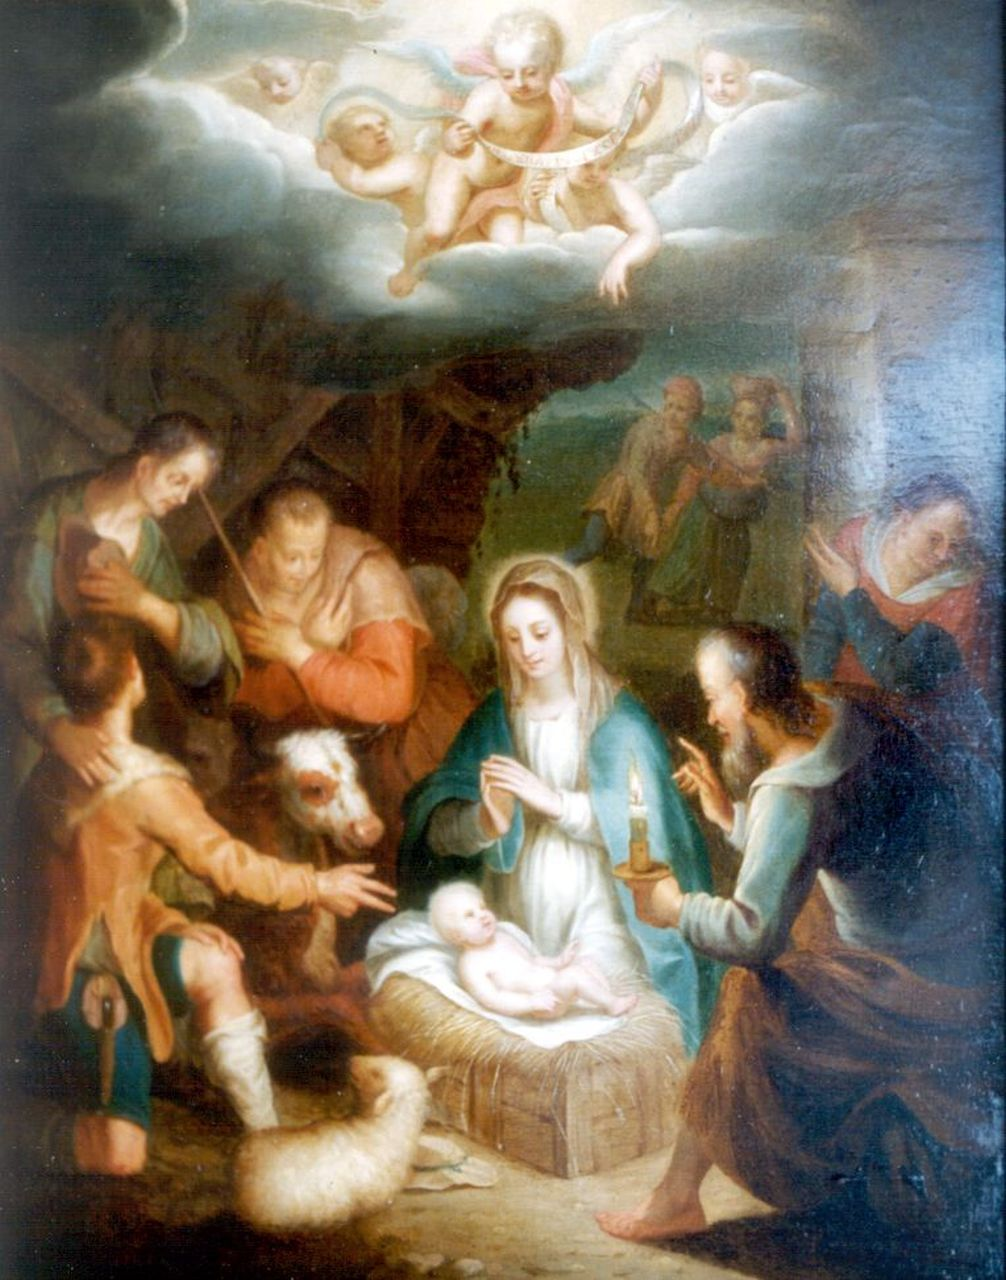 Duitse Romantische School   | Duitse Romantische School, Adoration of the shepherds, oil on panel 30.3 x 24.0 cm